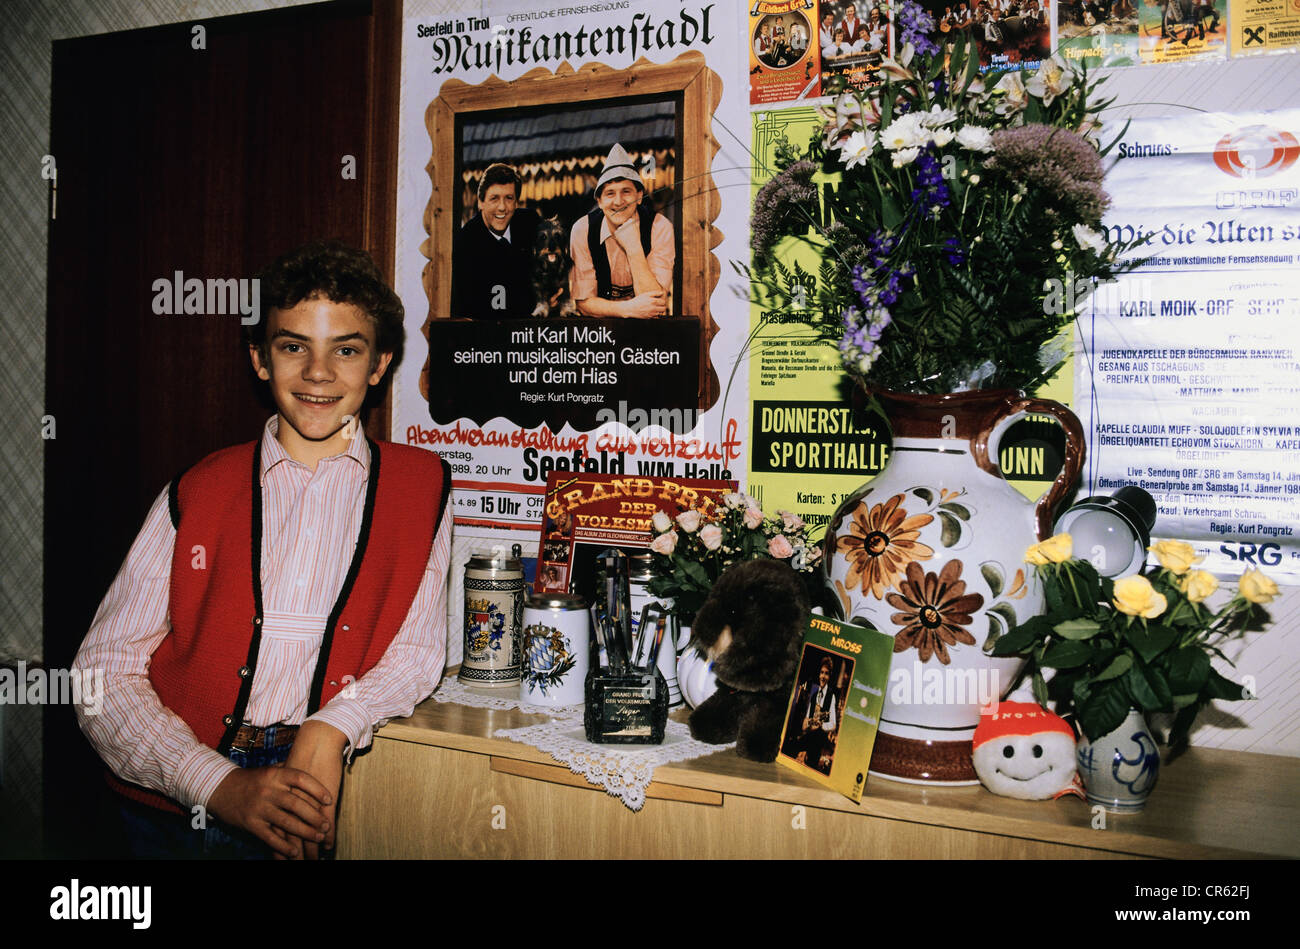 Mross Stefan, * 26.11.1975, German musician (rumpeter), winner of the Folk Music Grand Prix, 1989, in his home in - Stock Image